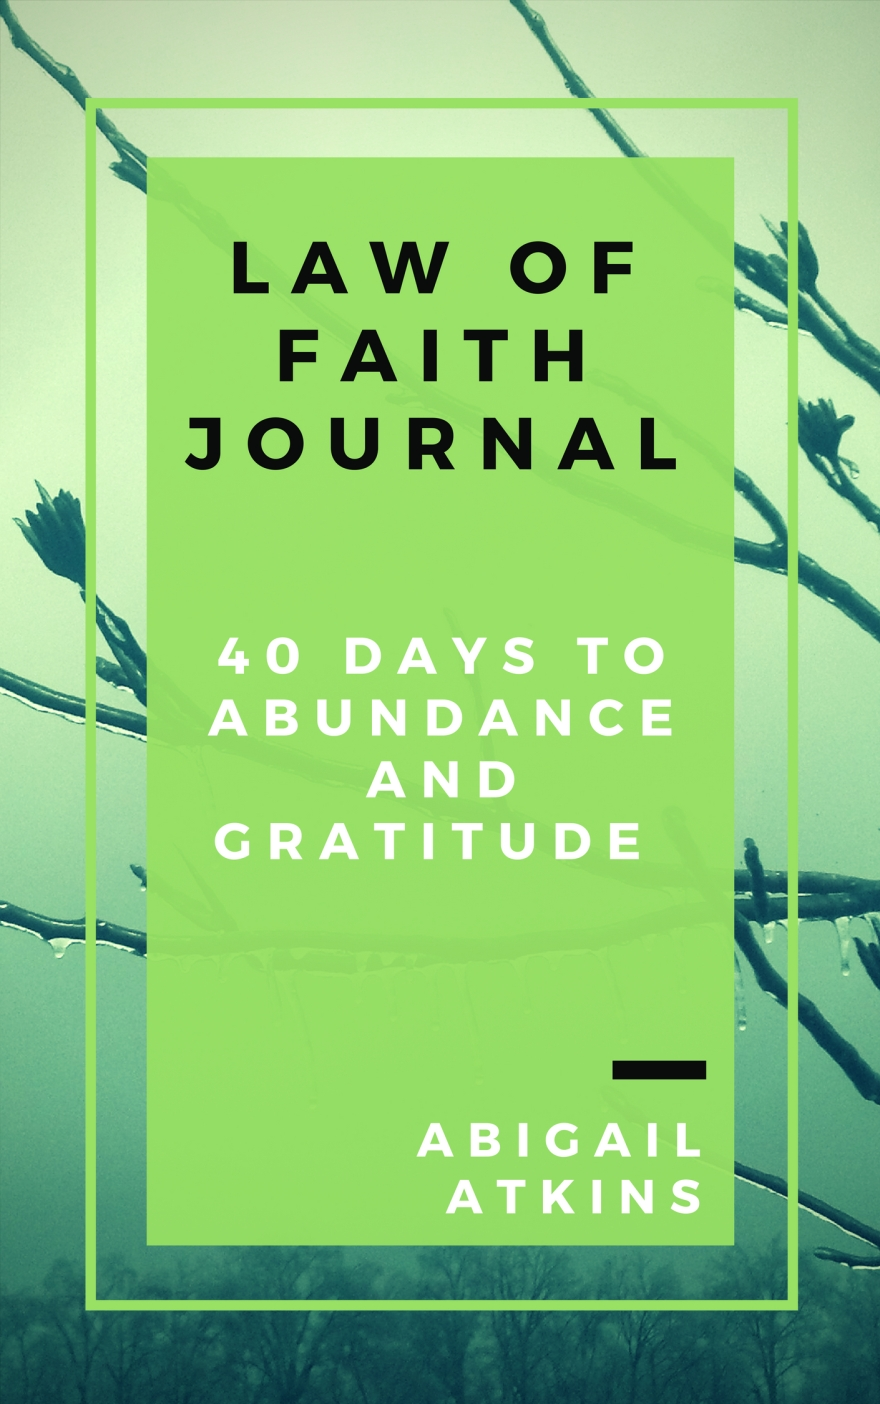 Law of Faith Journal.jpg